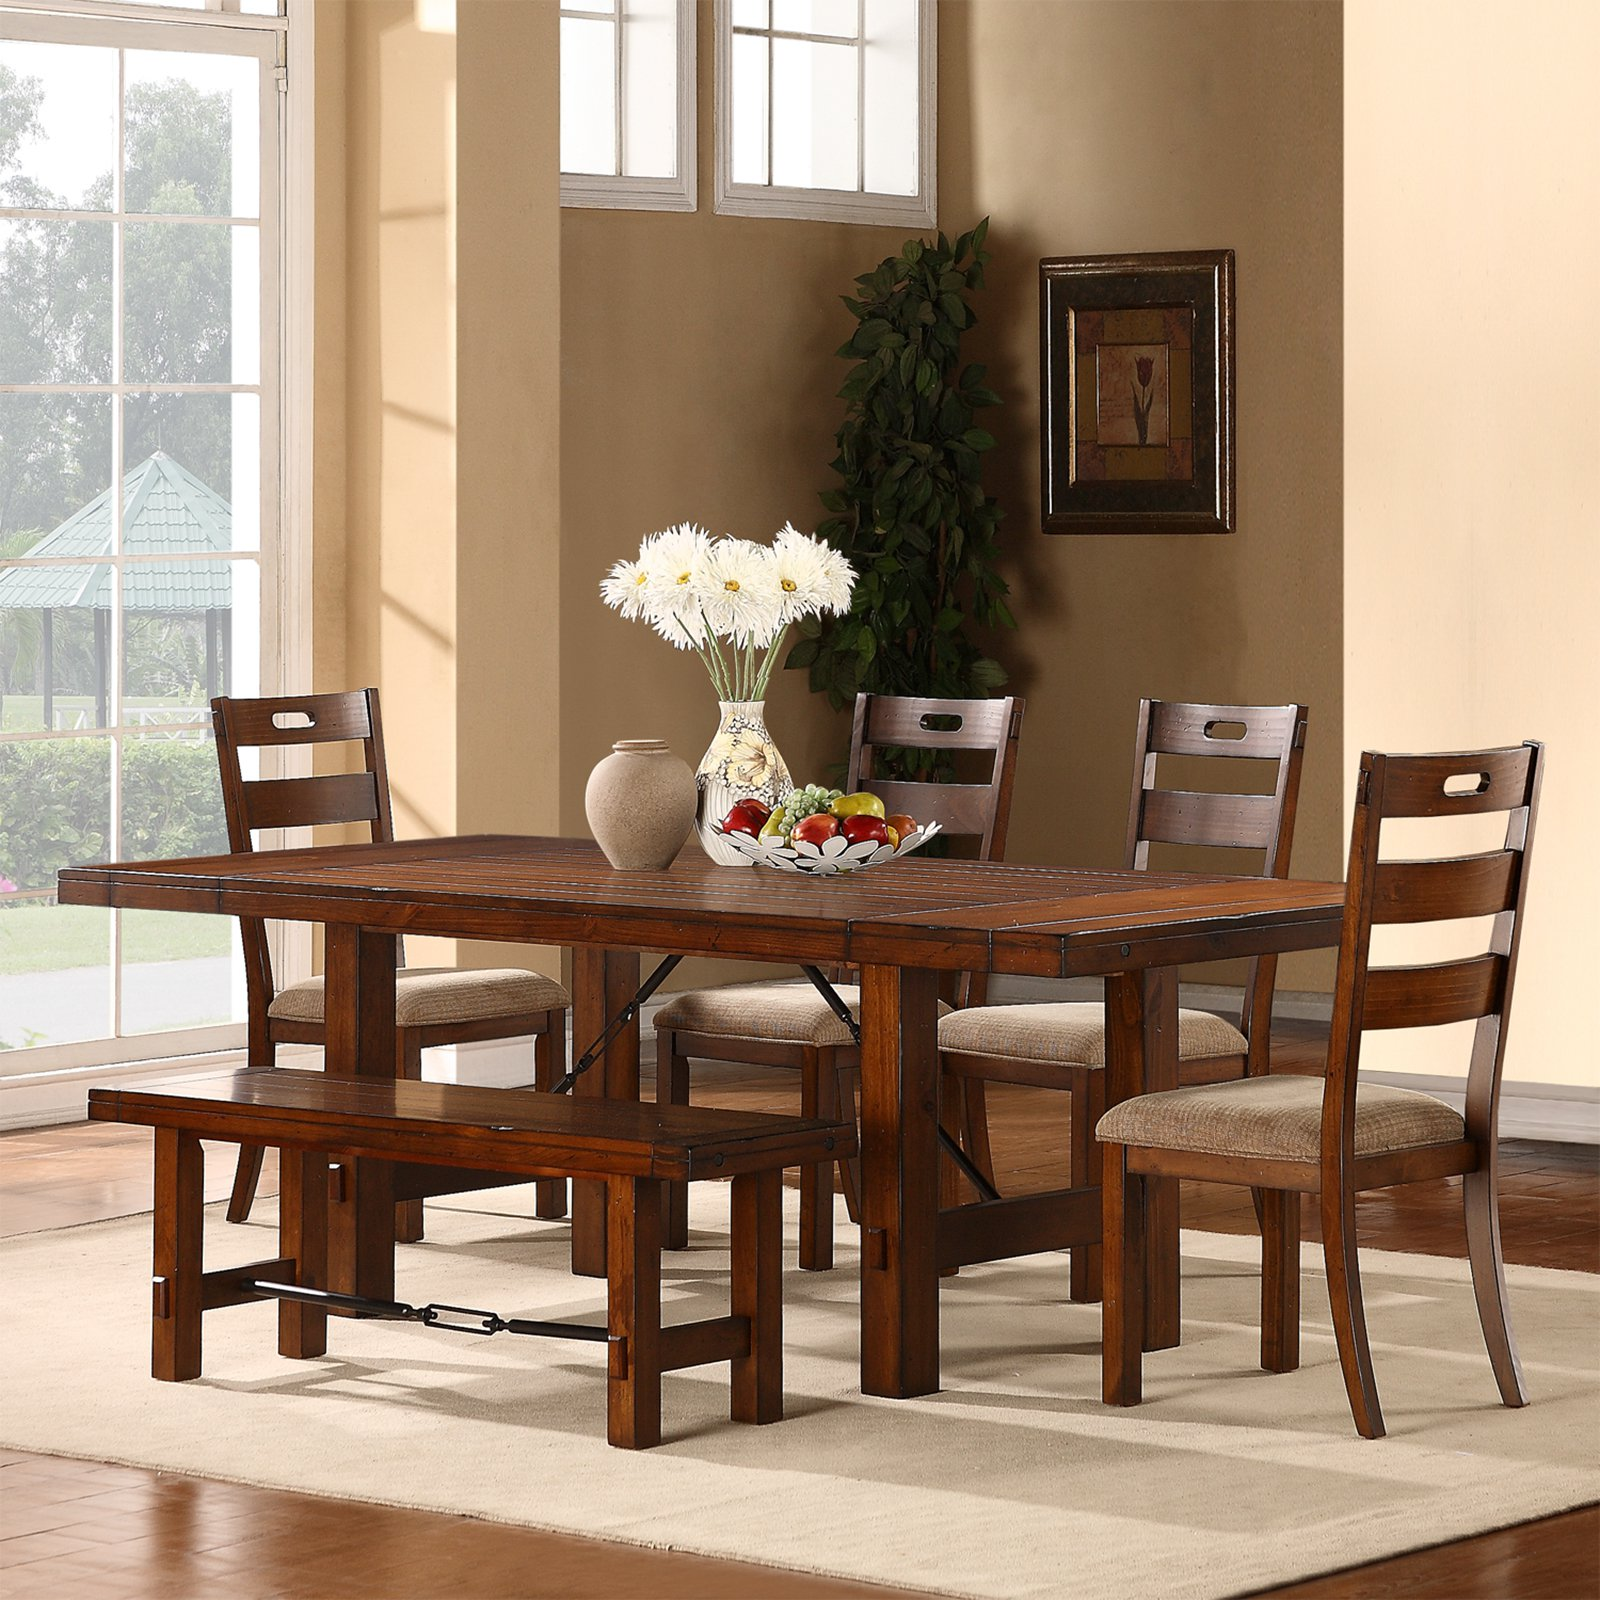 Weston Home Clayton 6 pc Dining Set, Rustic Oak